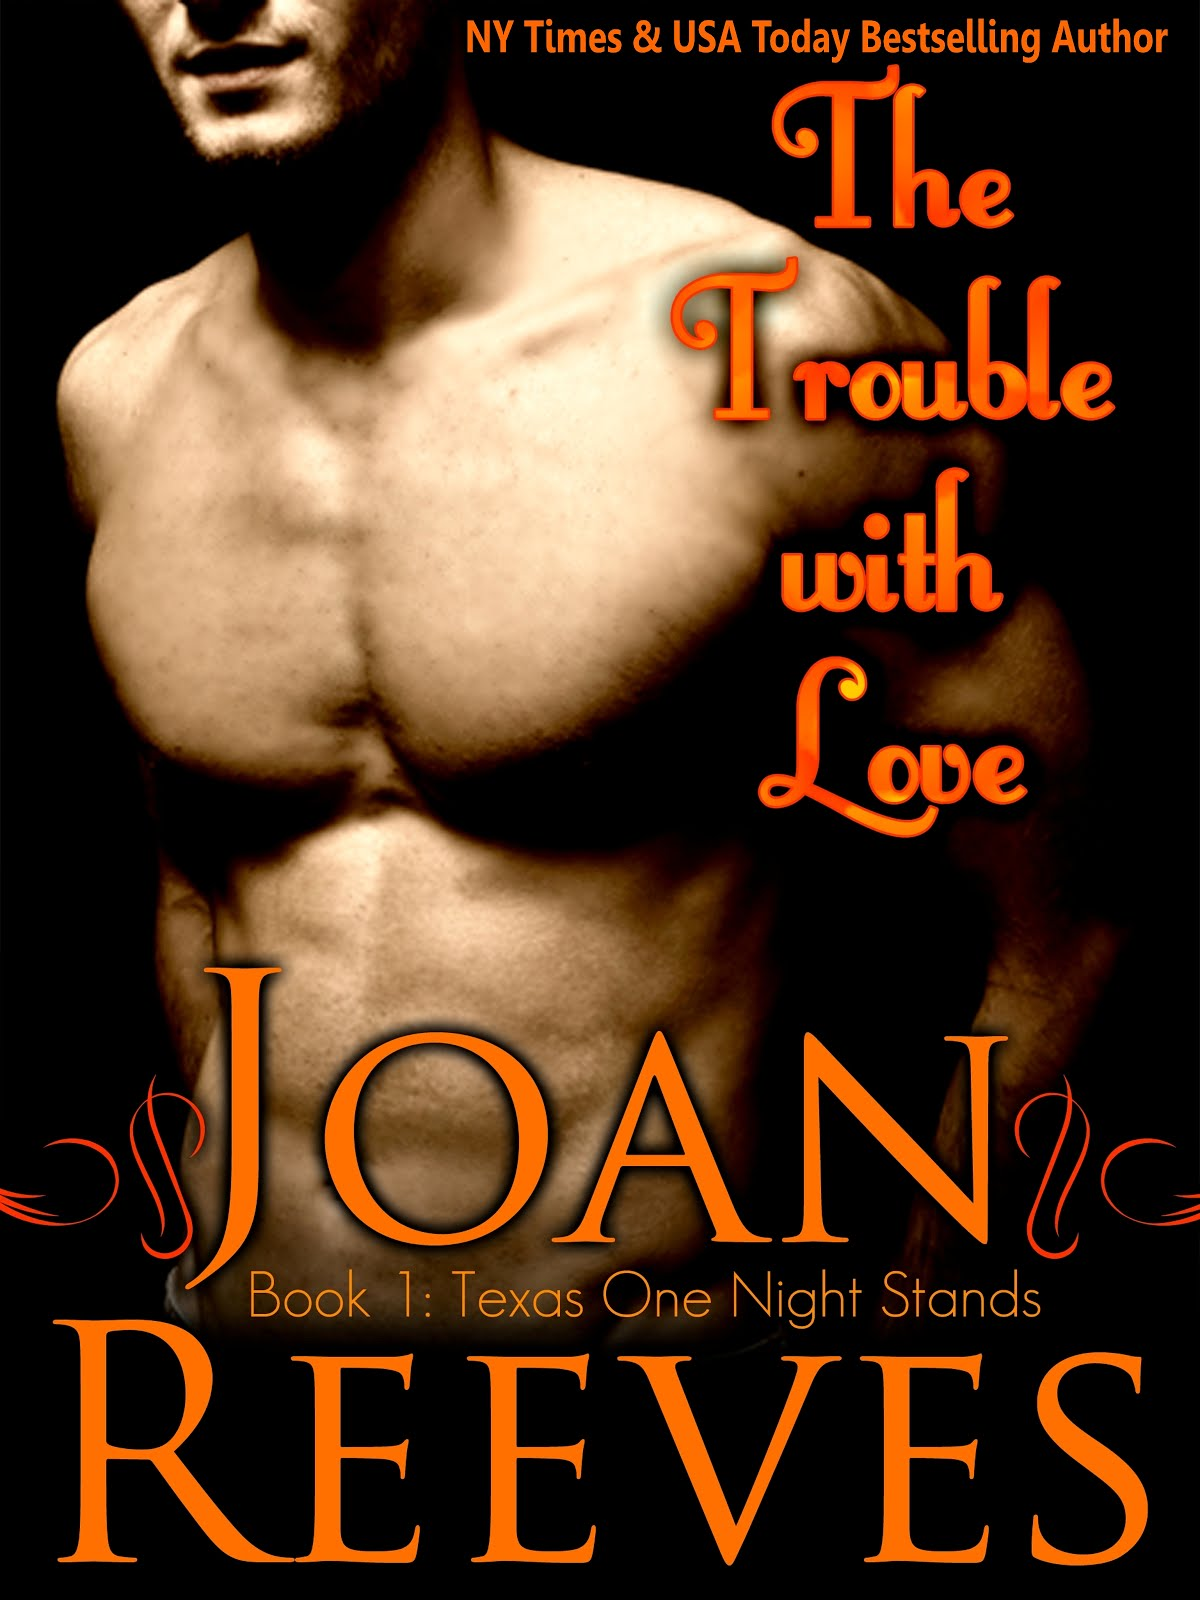 <b>Book 1, Texas One Night Stands</b>